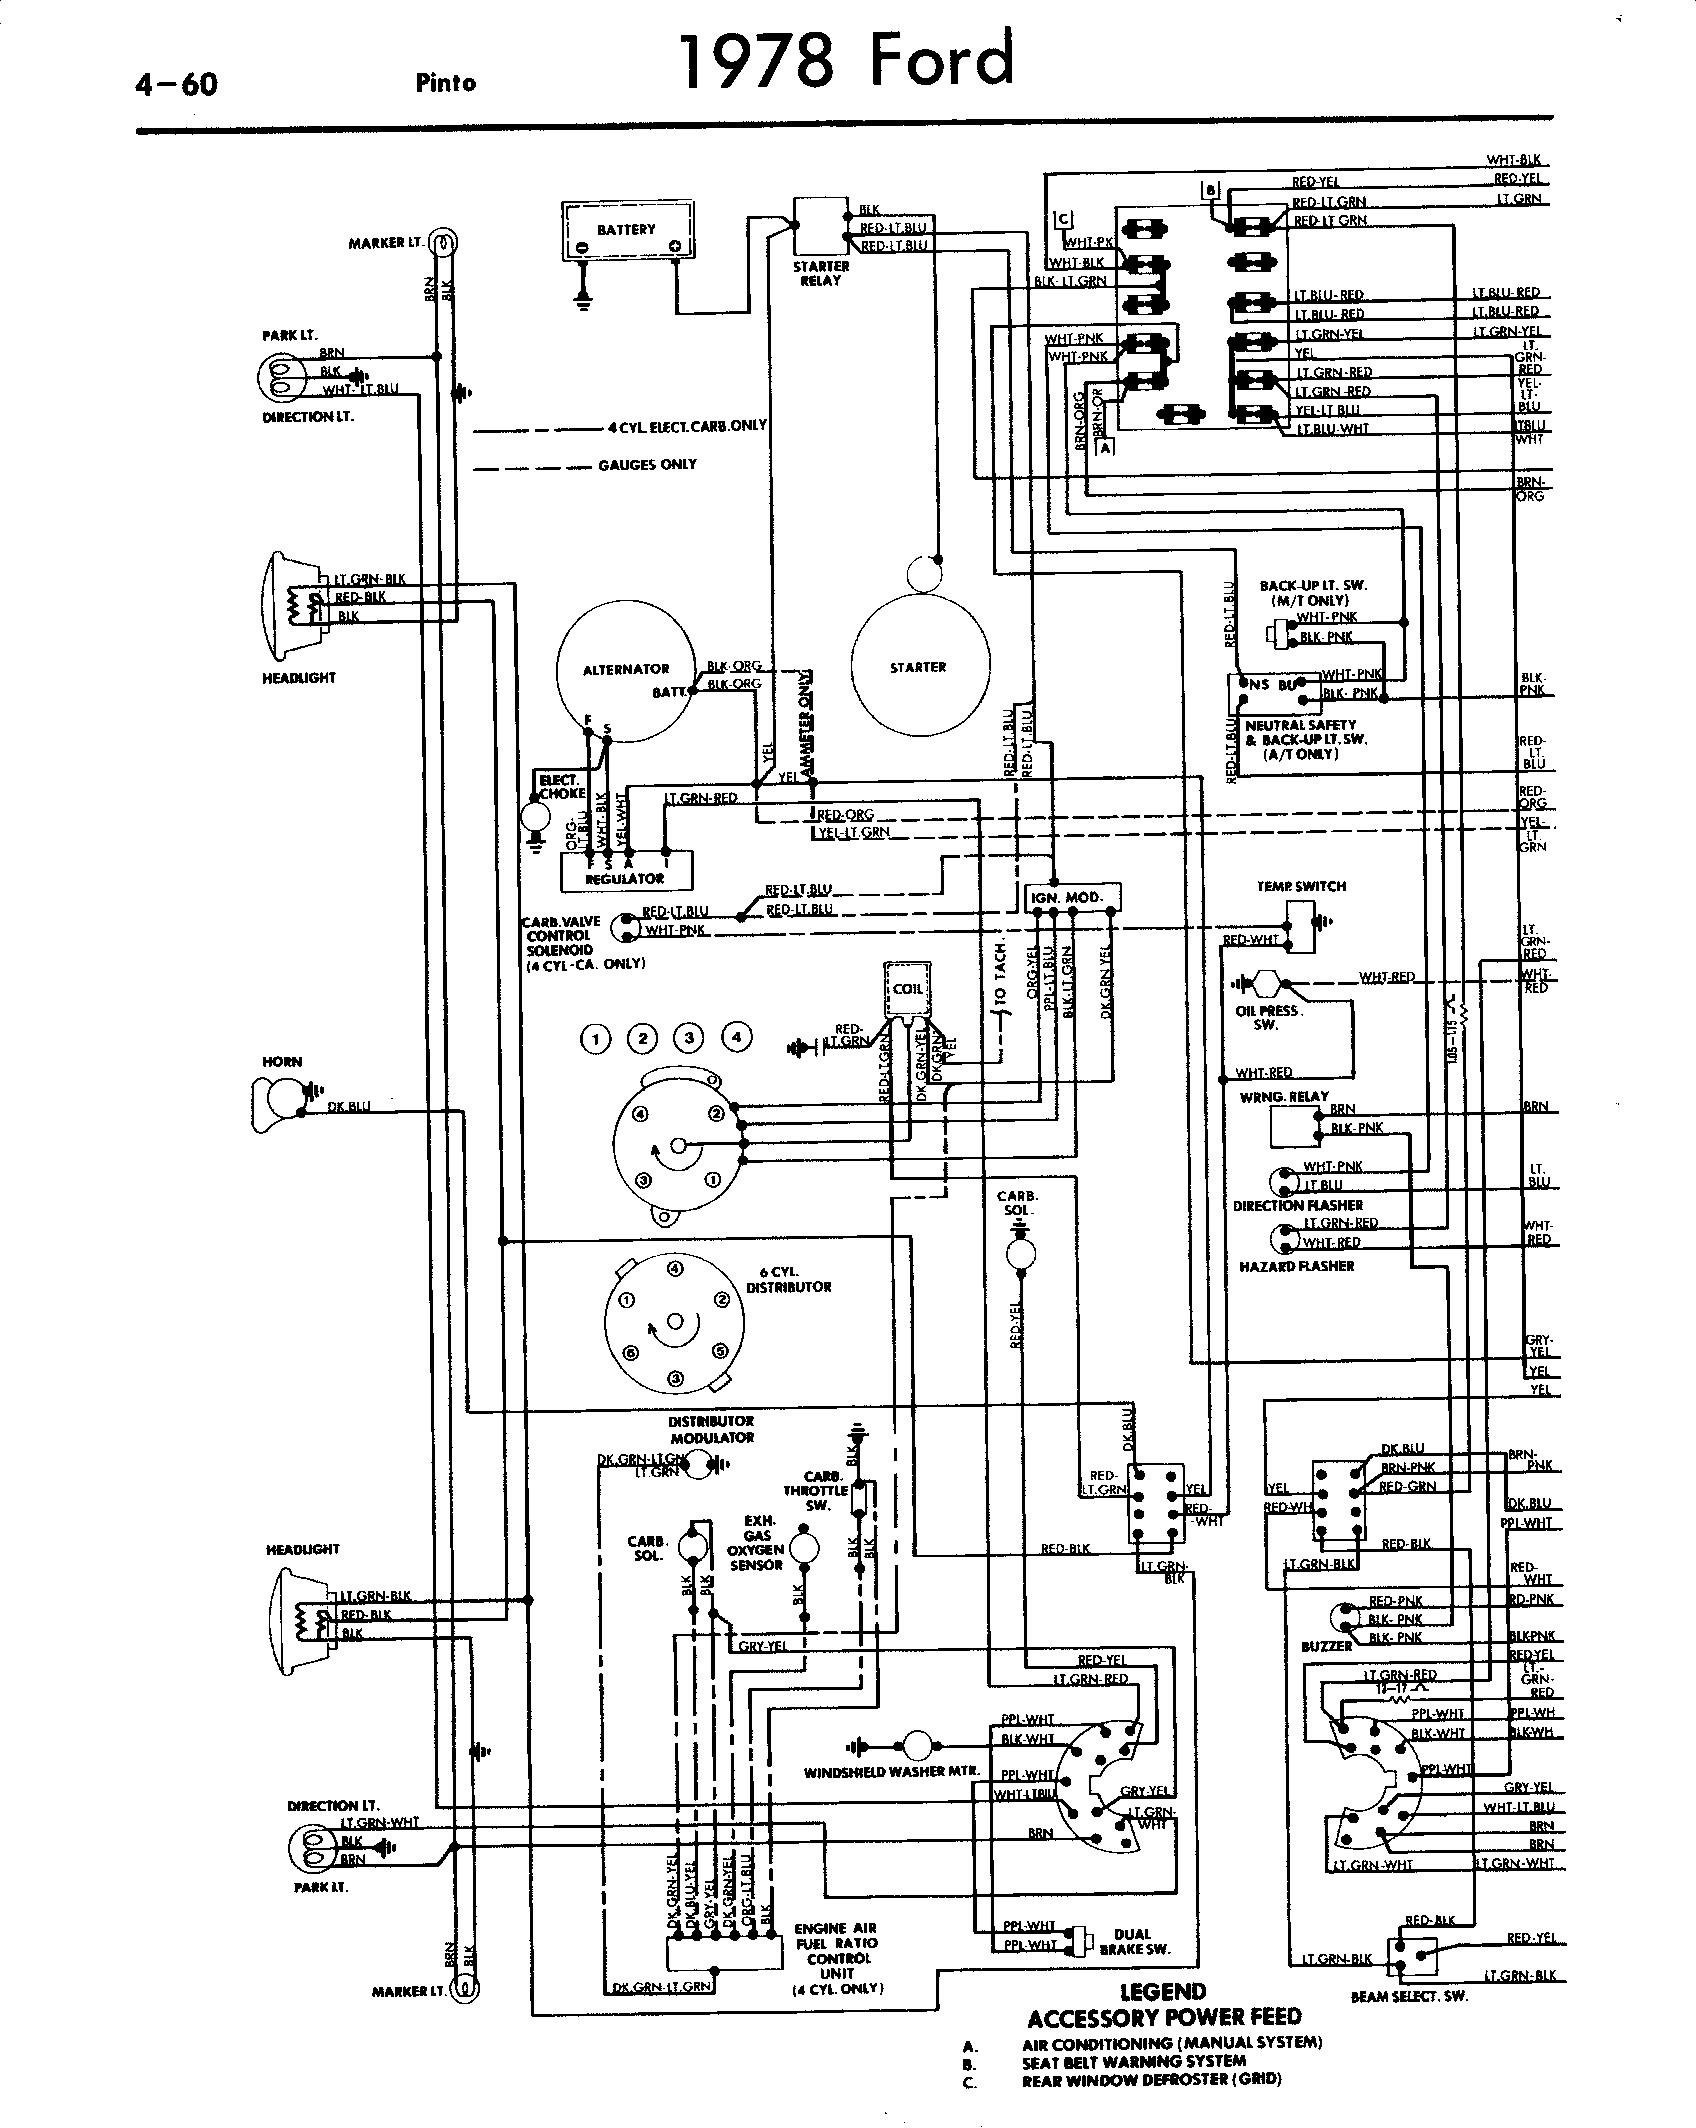 2 4 Cyl Ford Engine Parts Diagram • Wiring Diagram For Free